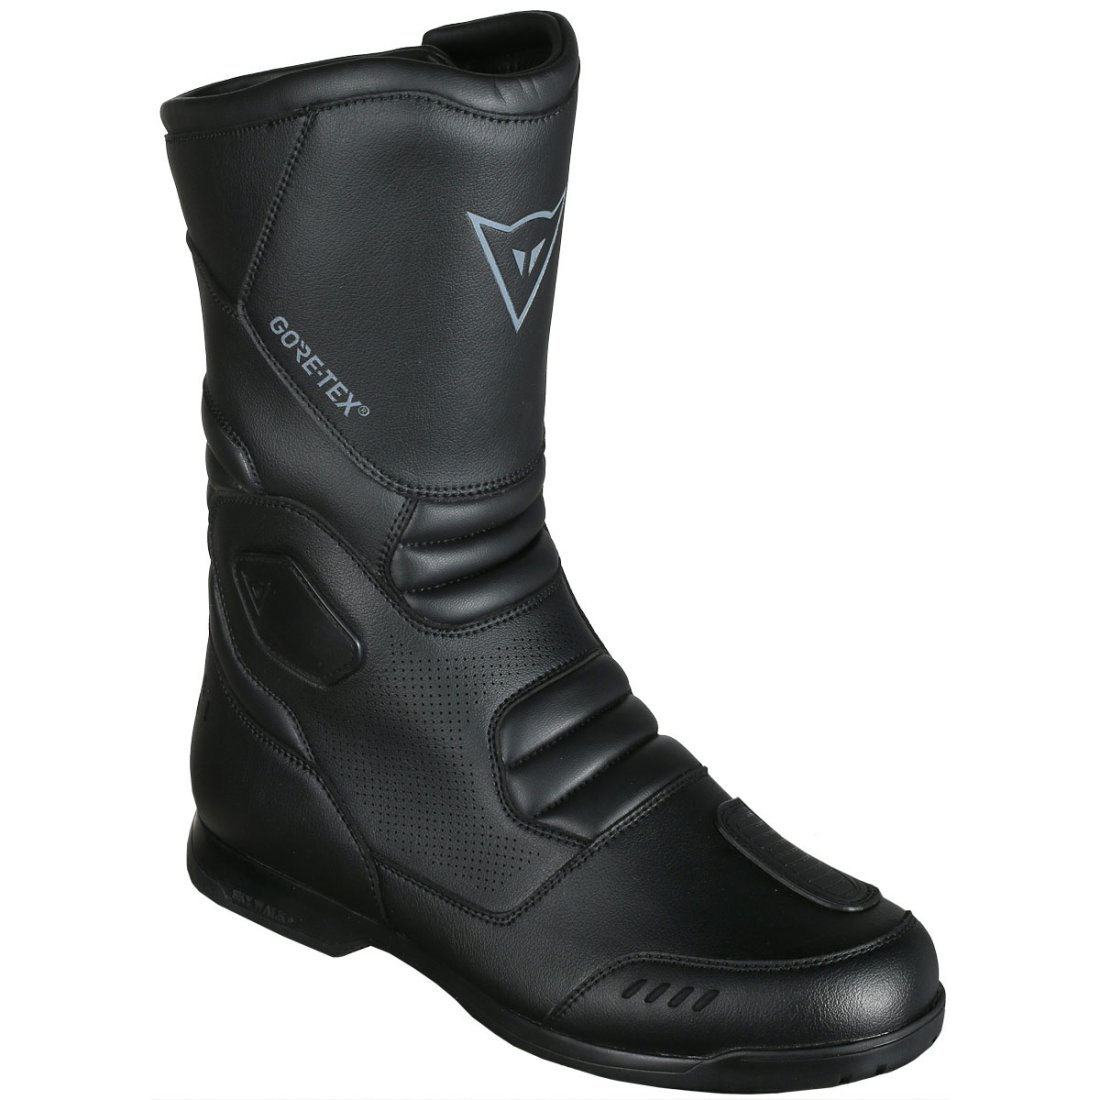 boutique officielle choisir véritable nouvelle collection DAINESE Freeland Gore-Tex Black Boots